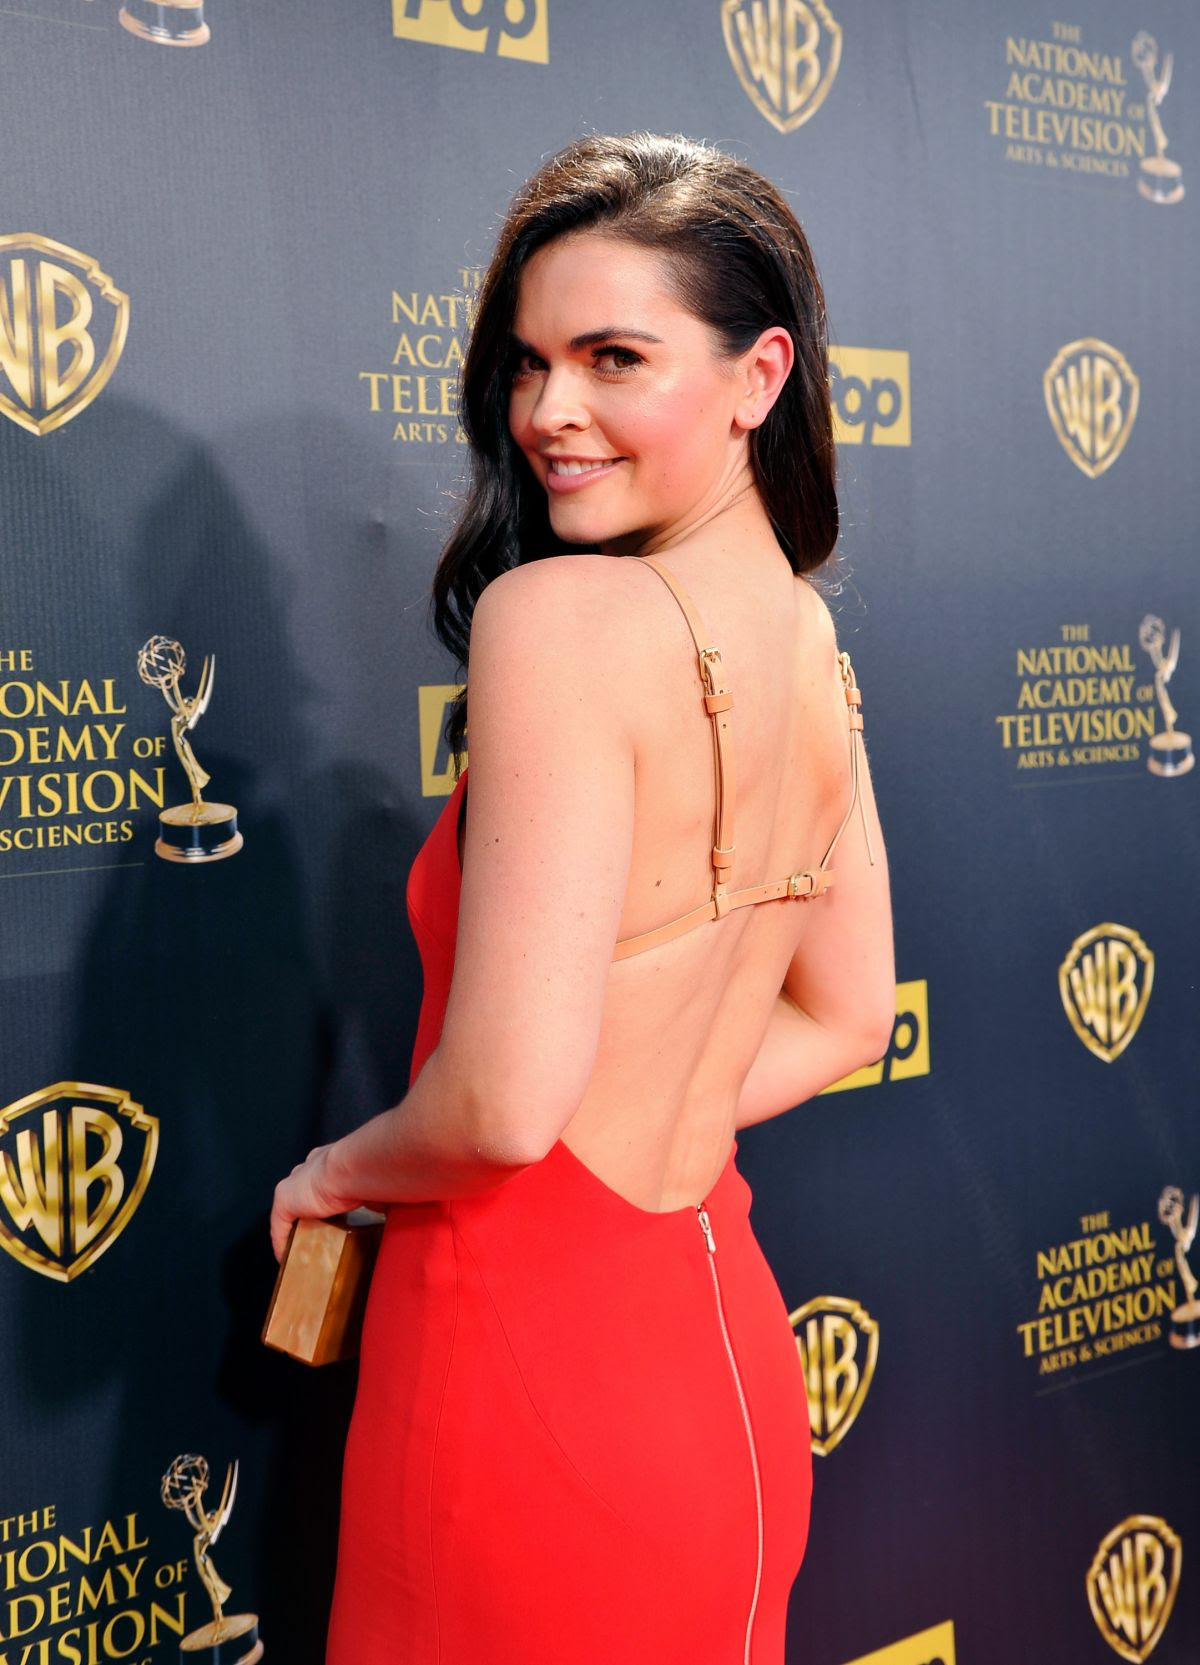 KATIE LEE at 2015 Daytime Emmy Awards in Burbank